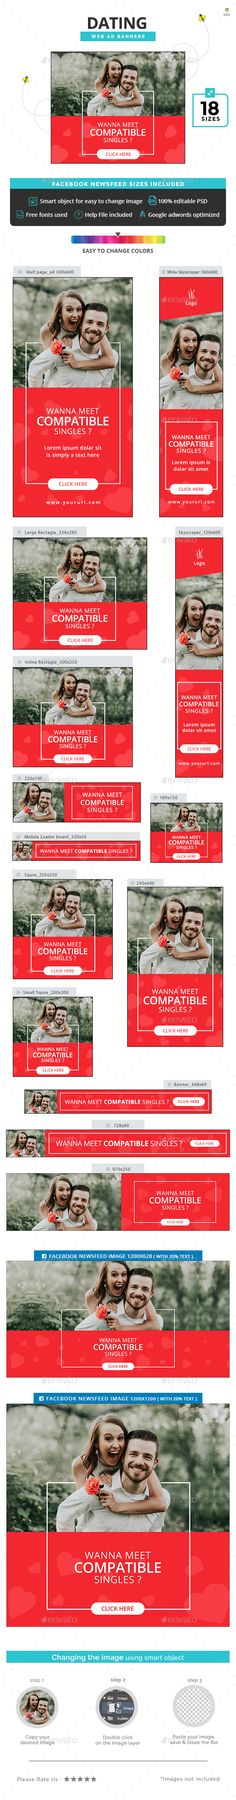 Dating Banners Template PSD #ad #webbanners